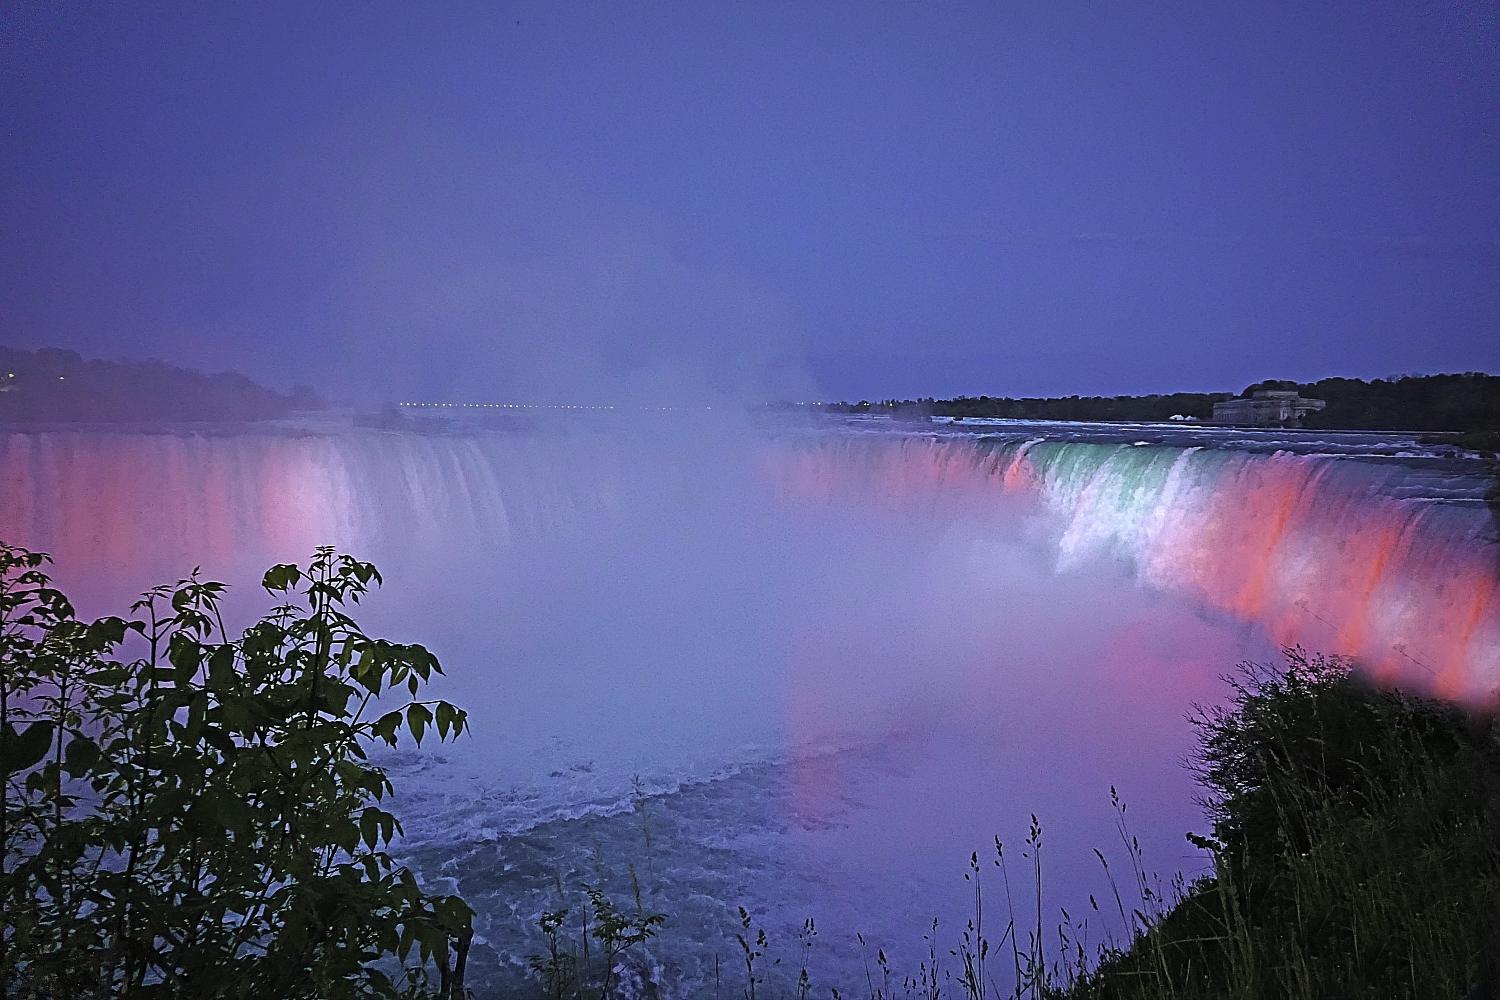 Daily light spectacular in Niagara Falls Canada.